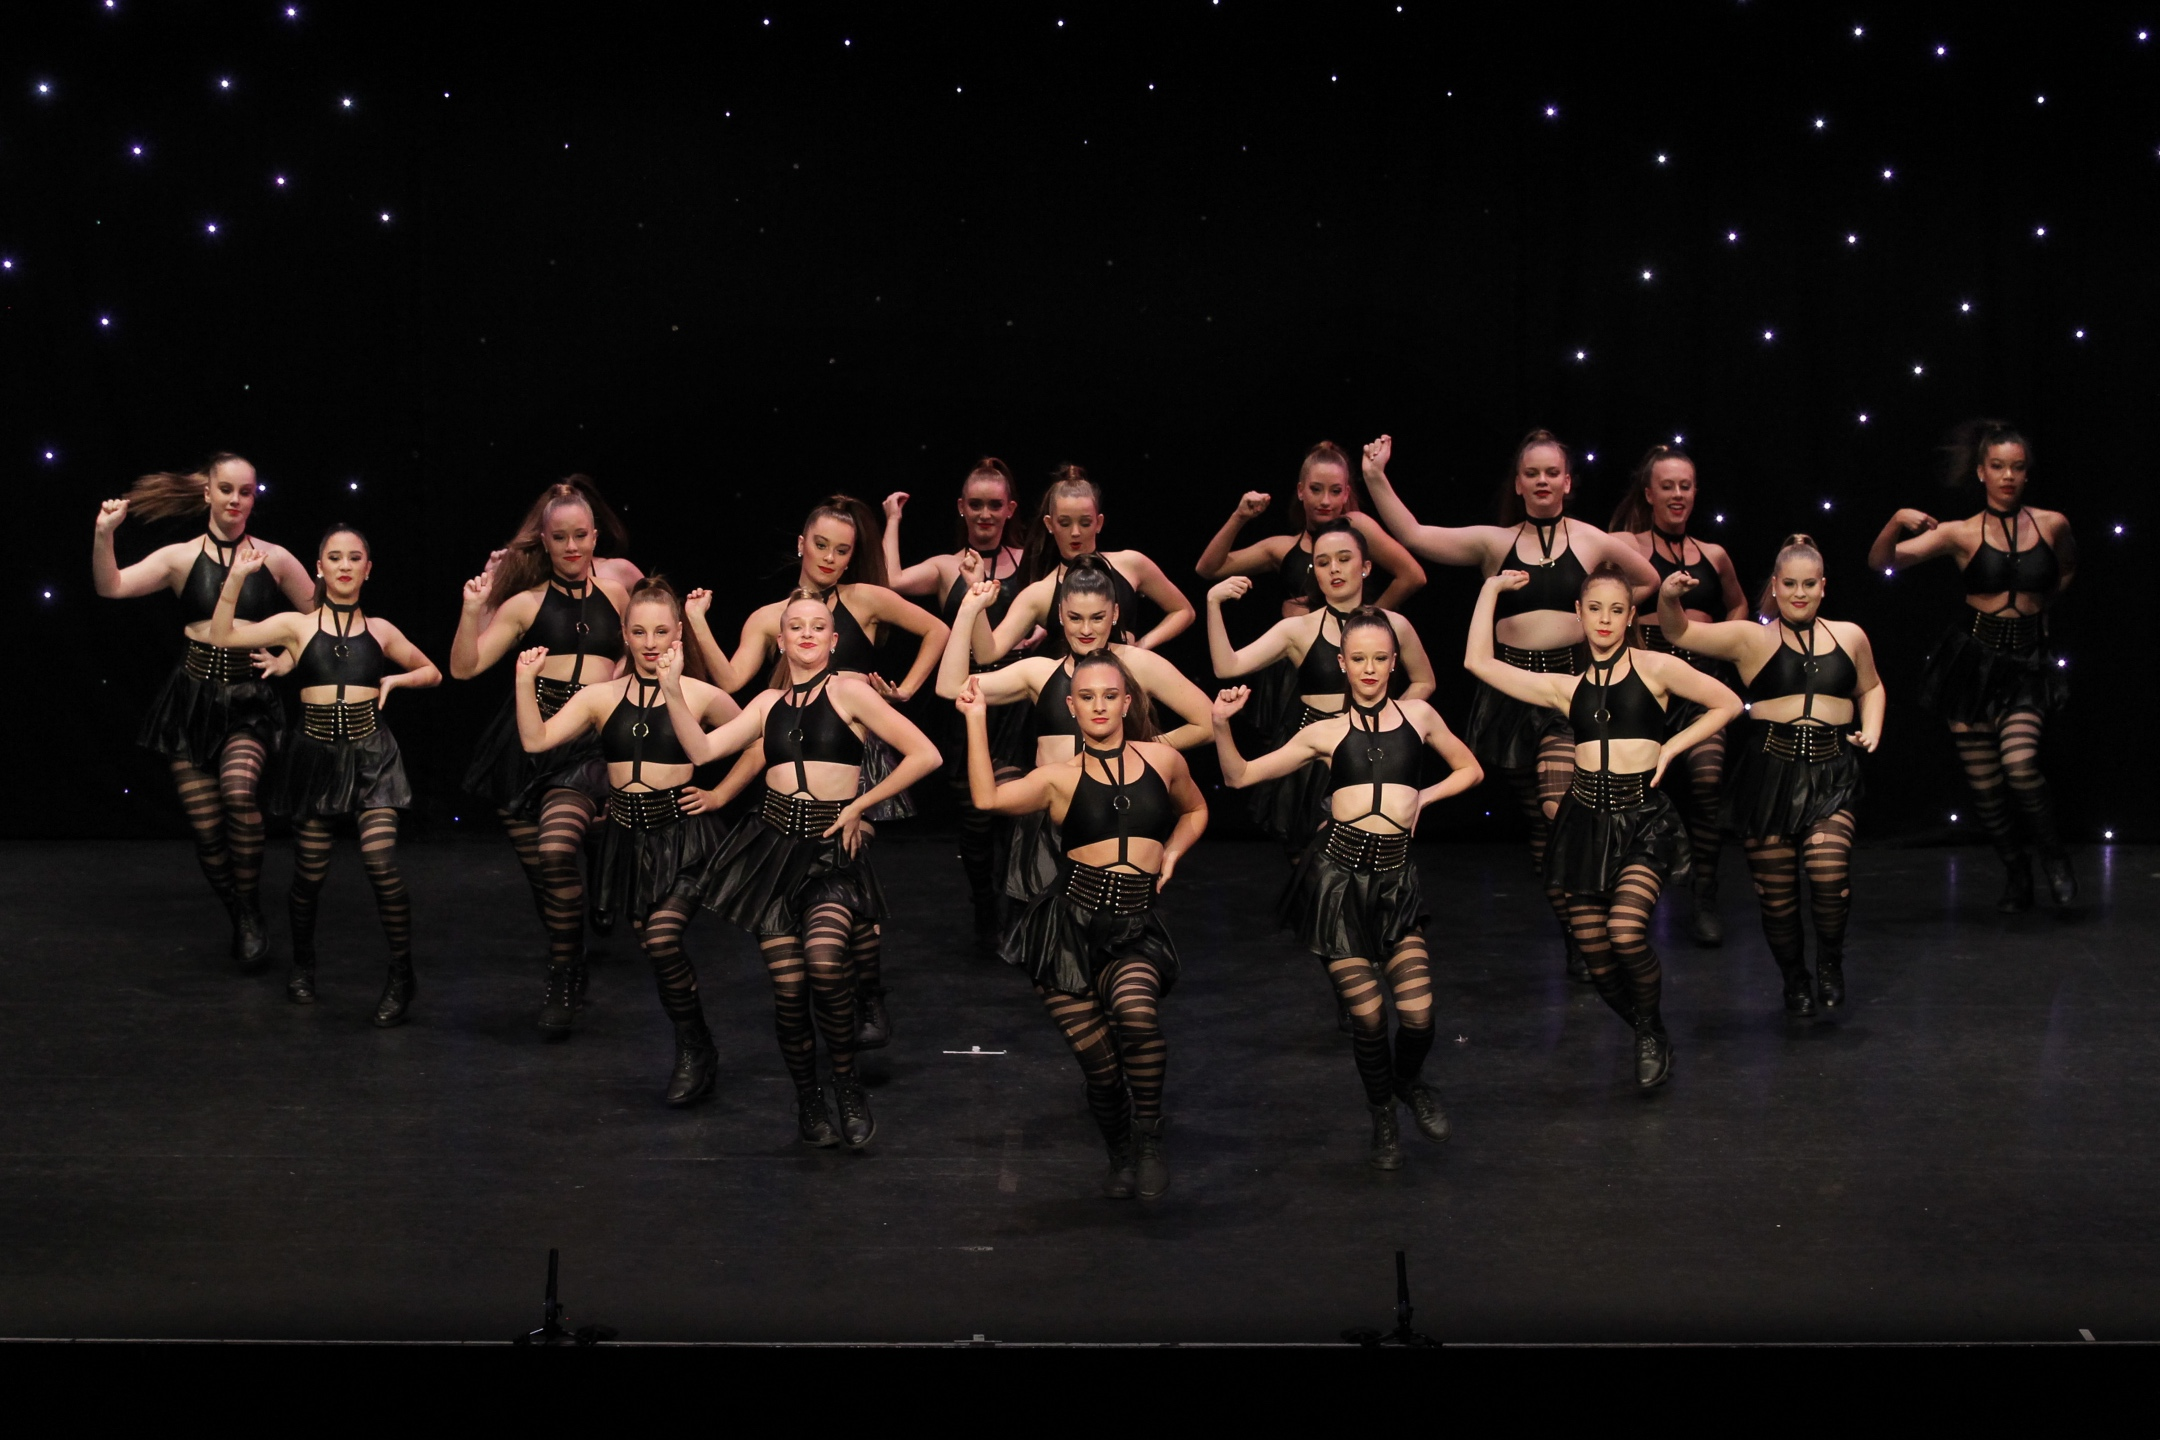 Commercial Jazz Dancers On Stage